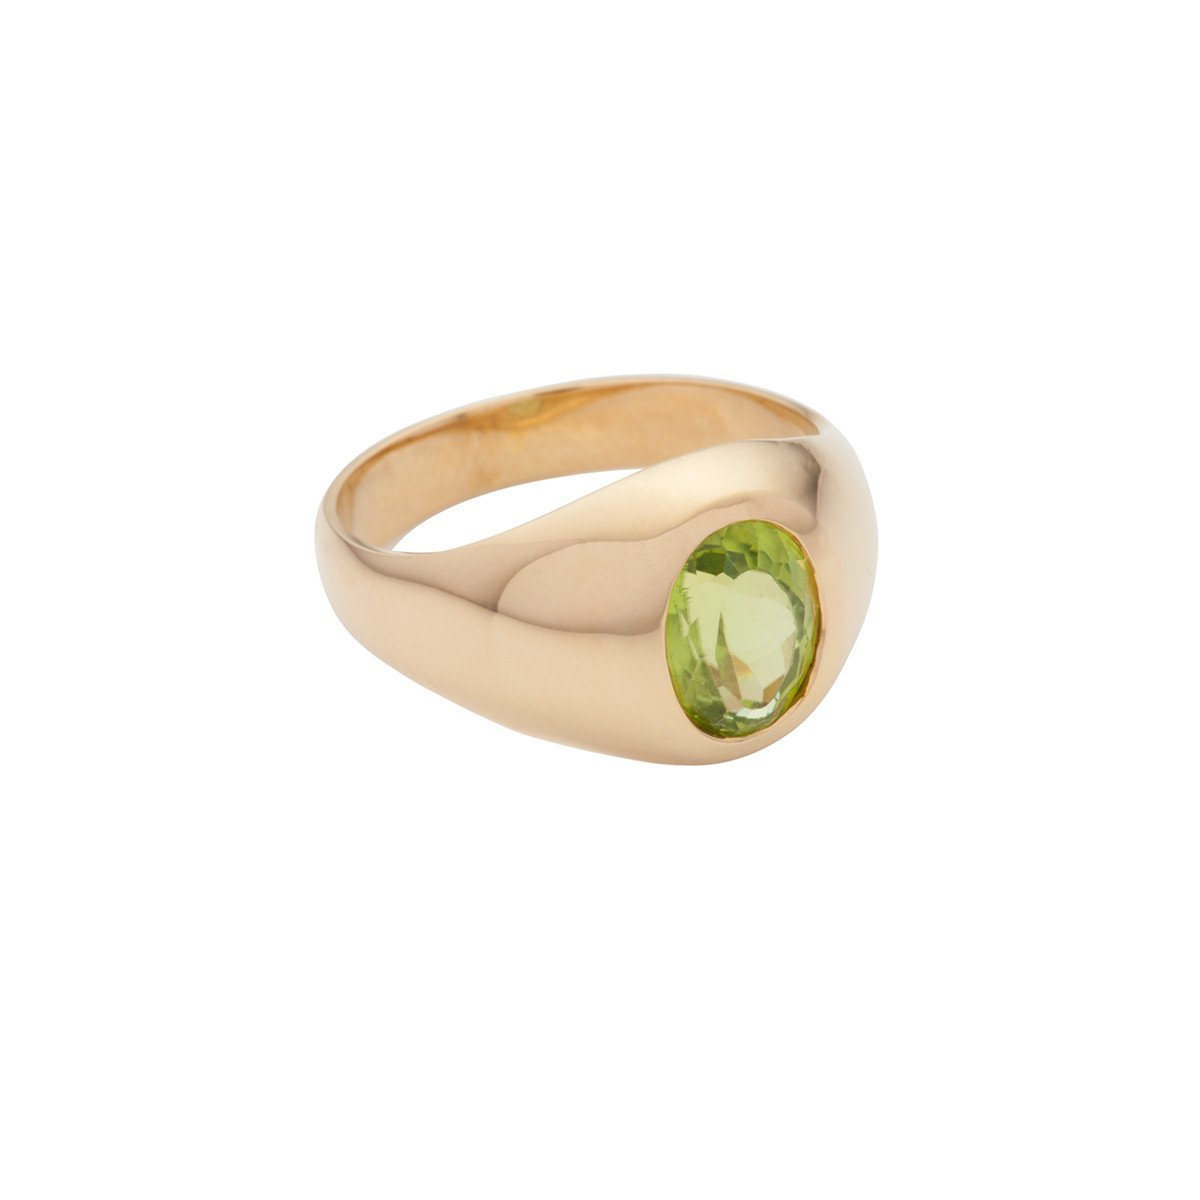 SUSAN CAPLAN CONTEMPORARY 18CT GOLD VERMEIL RING WITH PERIDOT